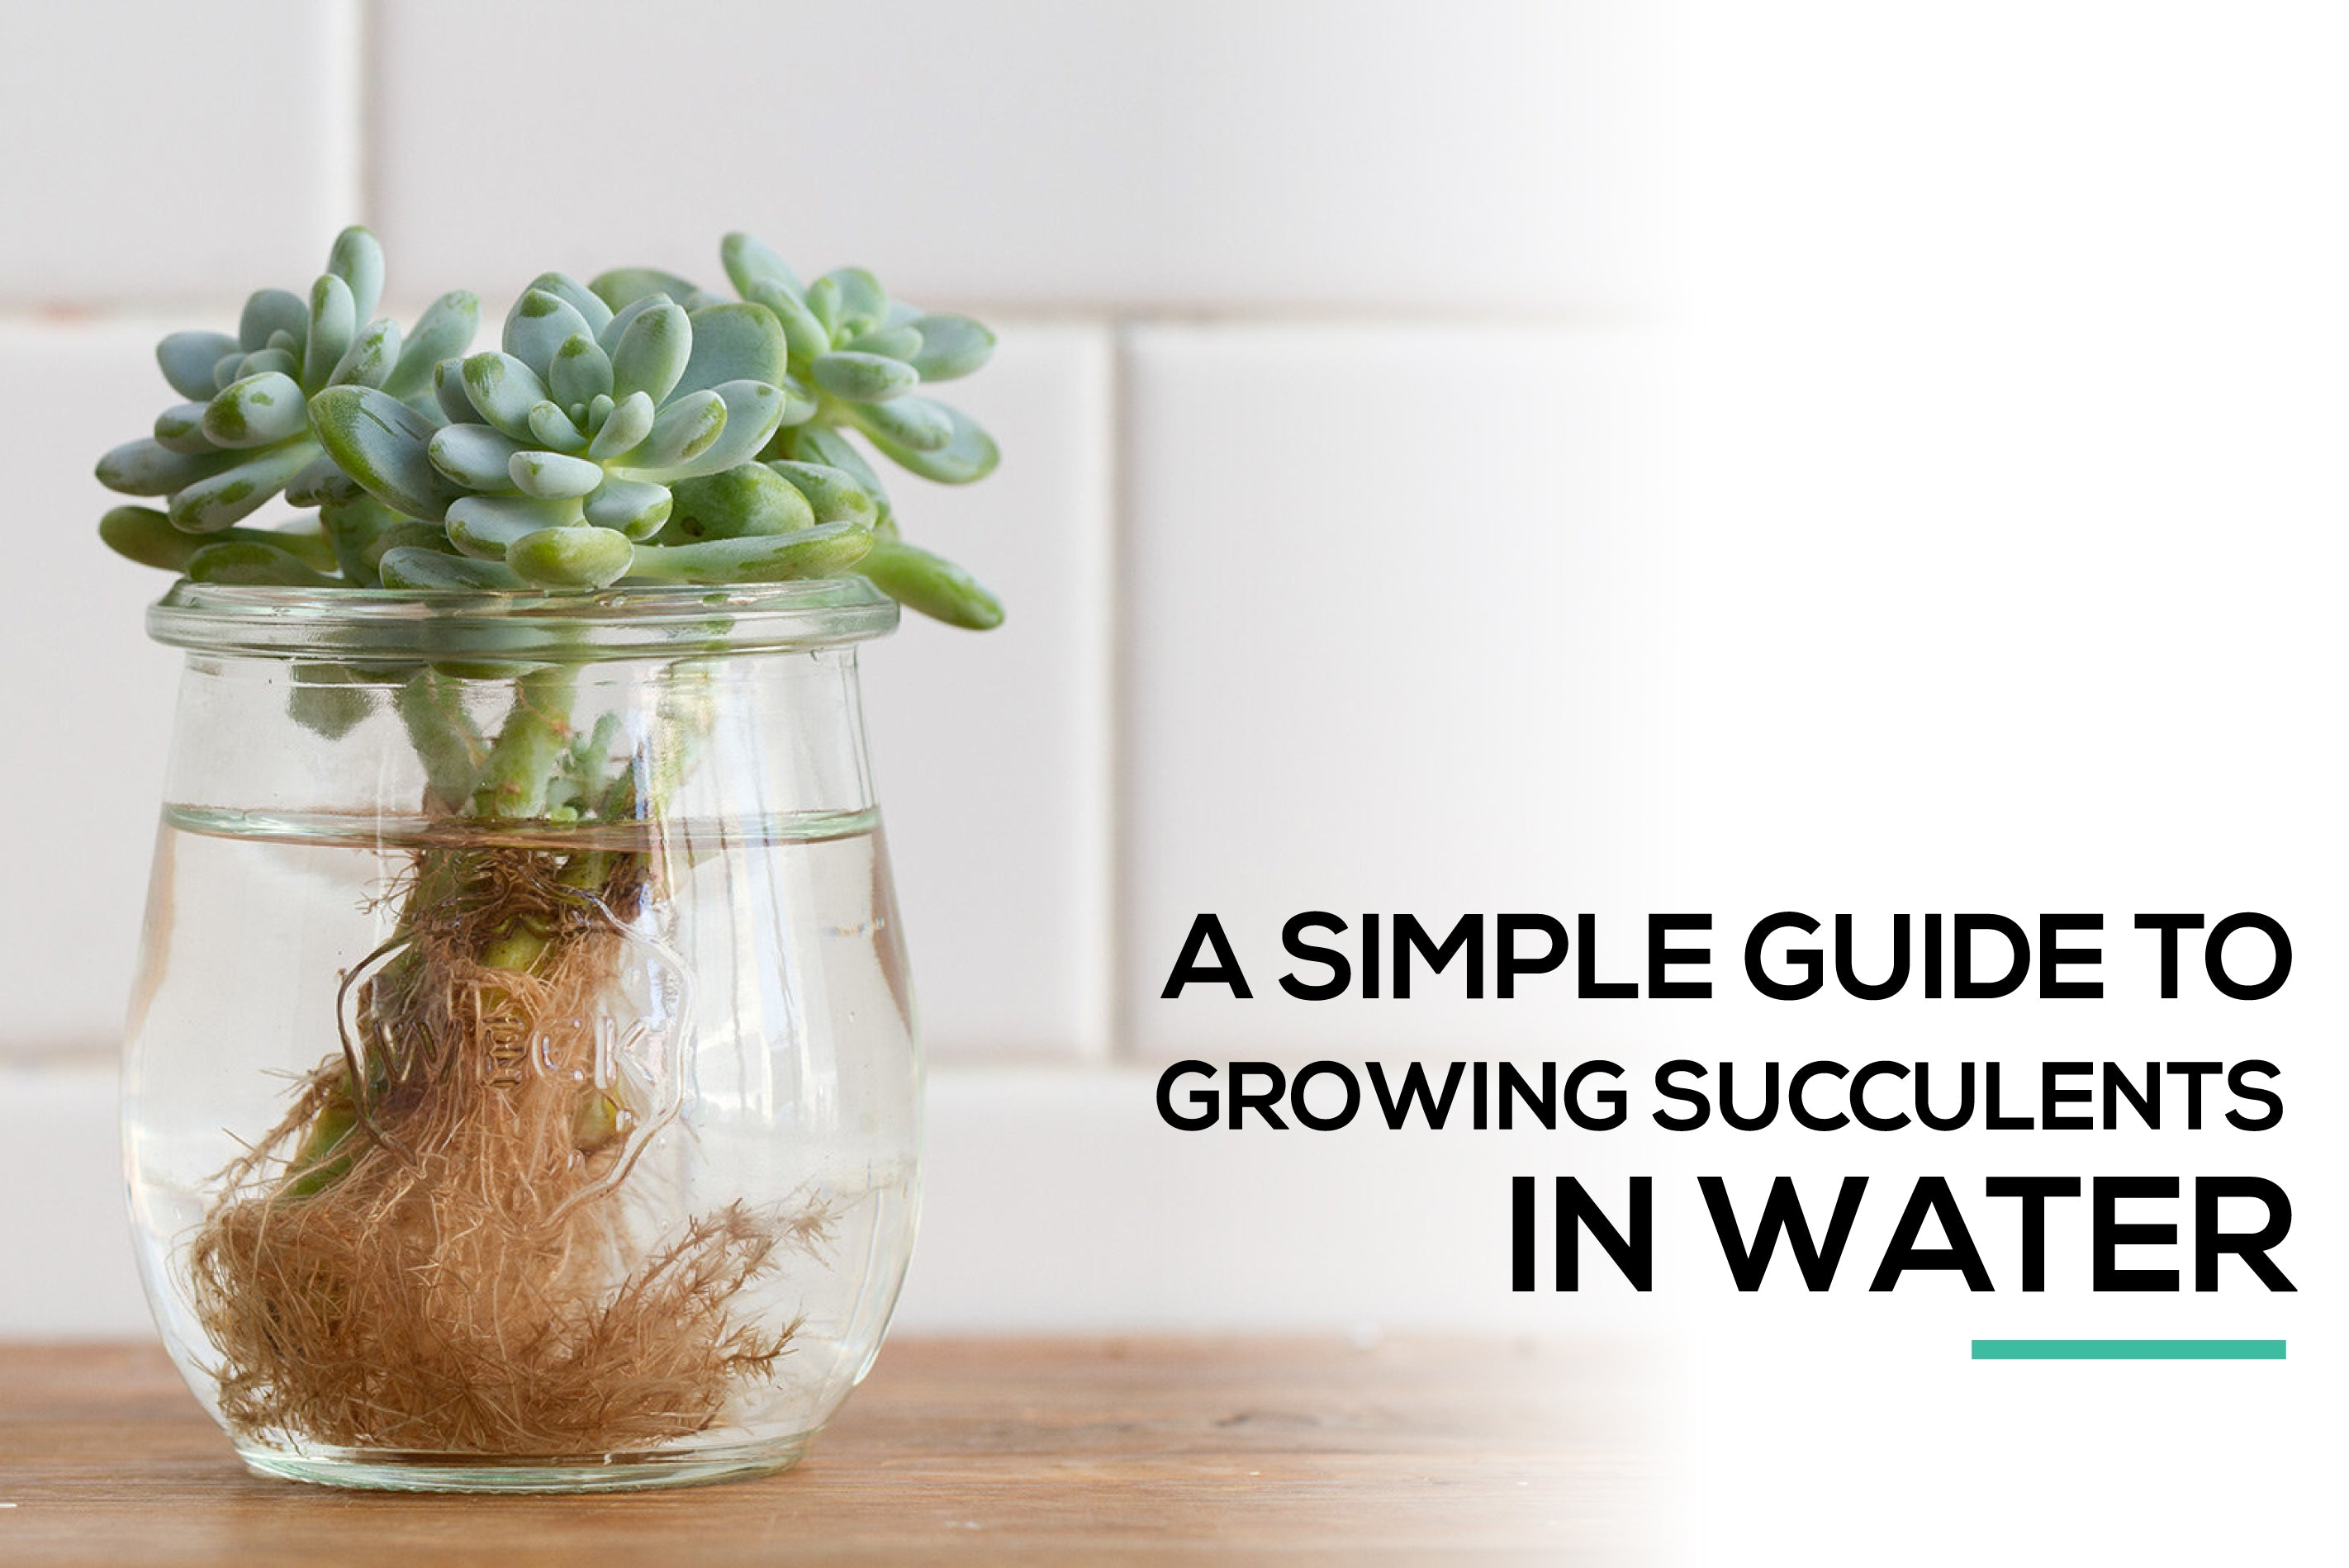 A Simple Guide To Growing Succulents In Water Tips For Growing Succulents In Water Succulents Box